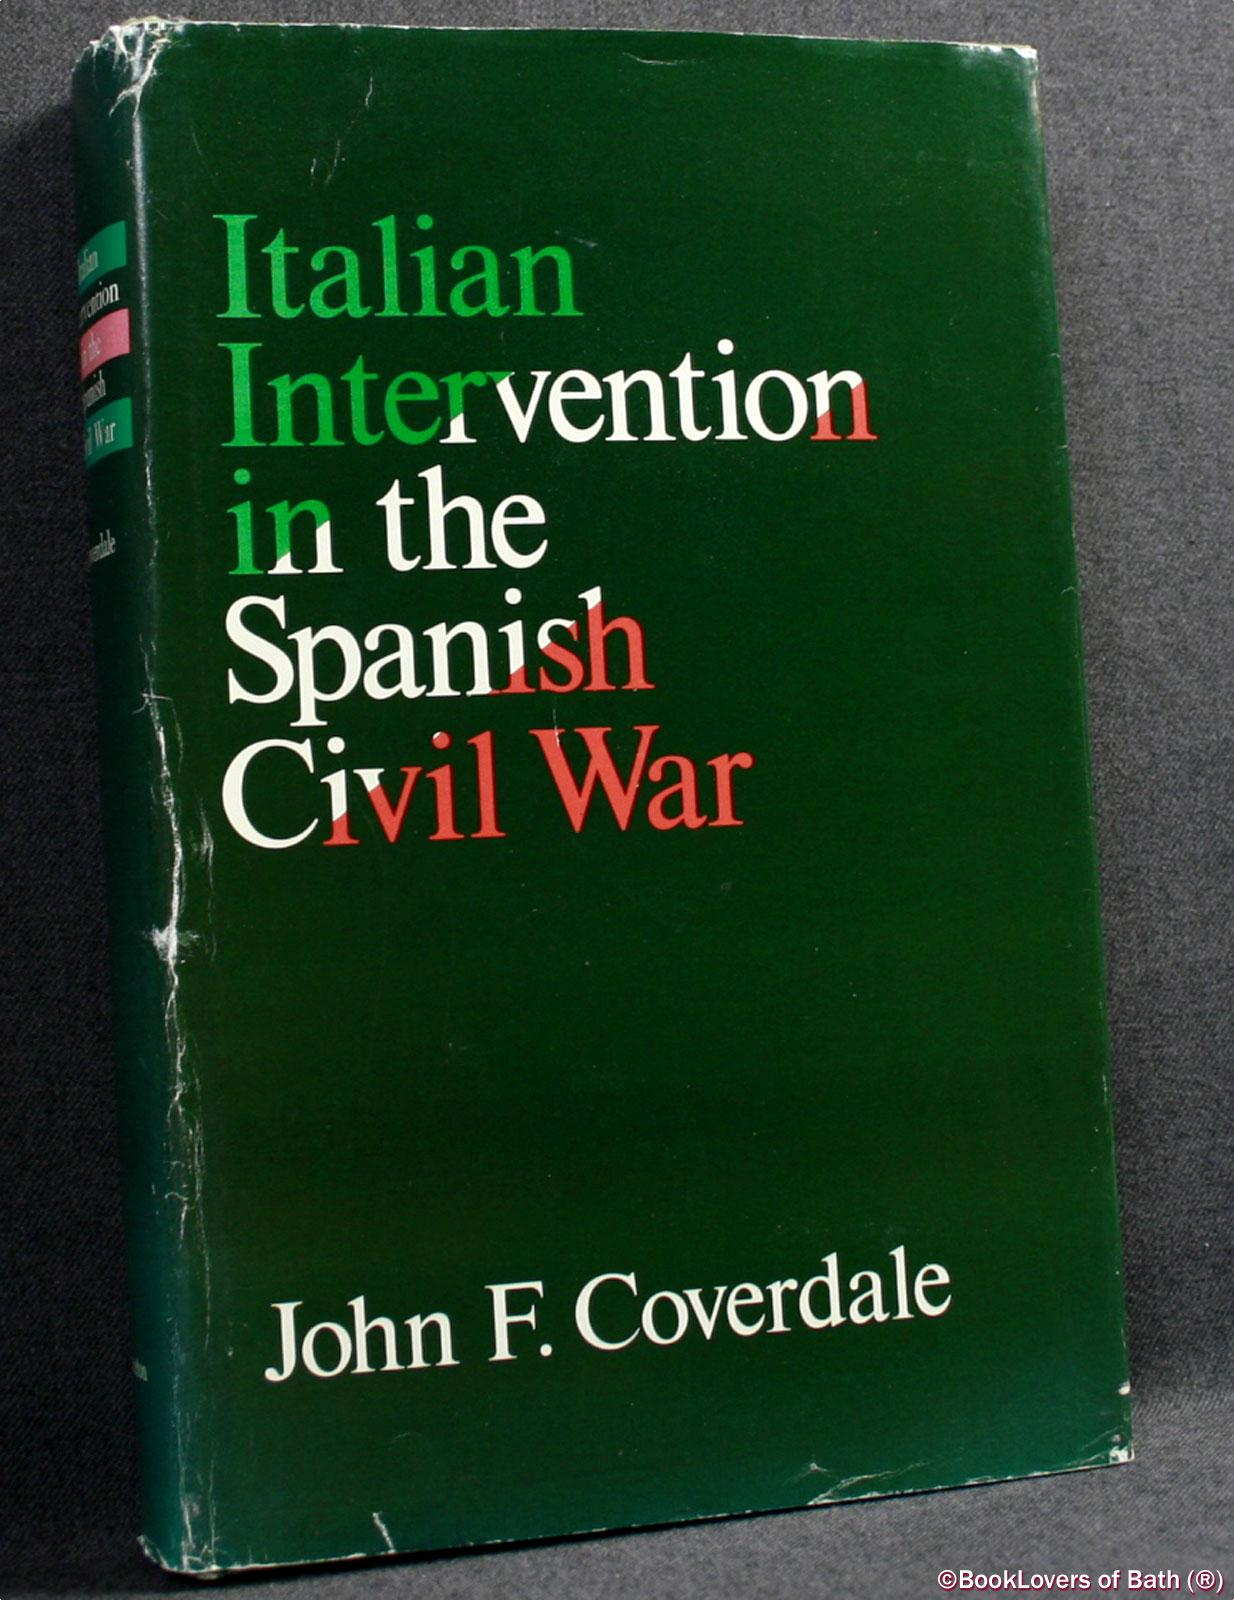 Italian Intervention In The Spanish Civil War - John F. Coverdale